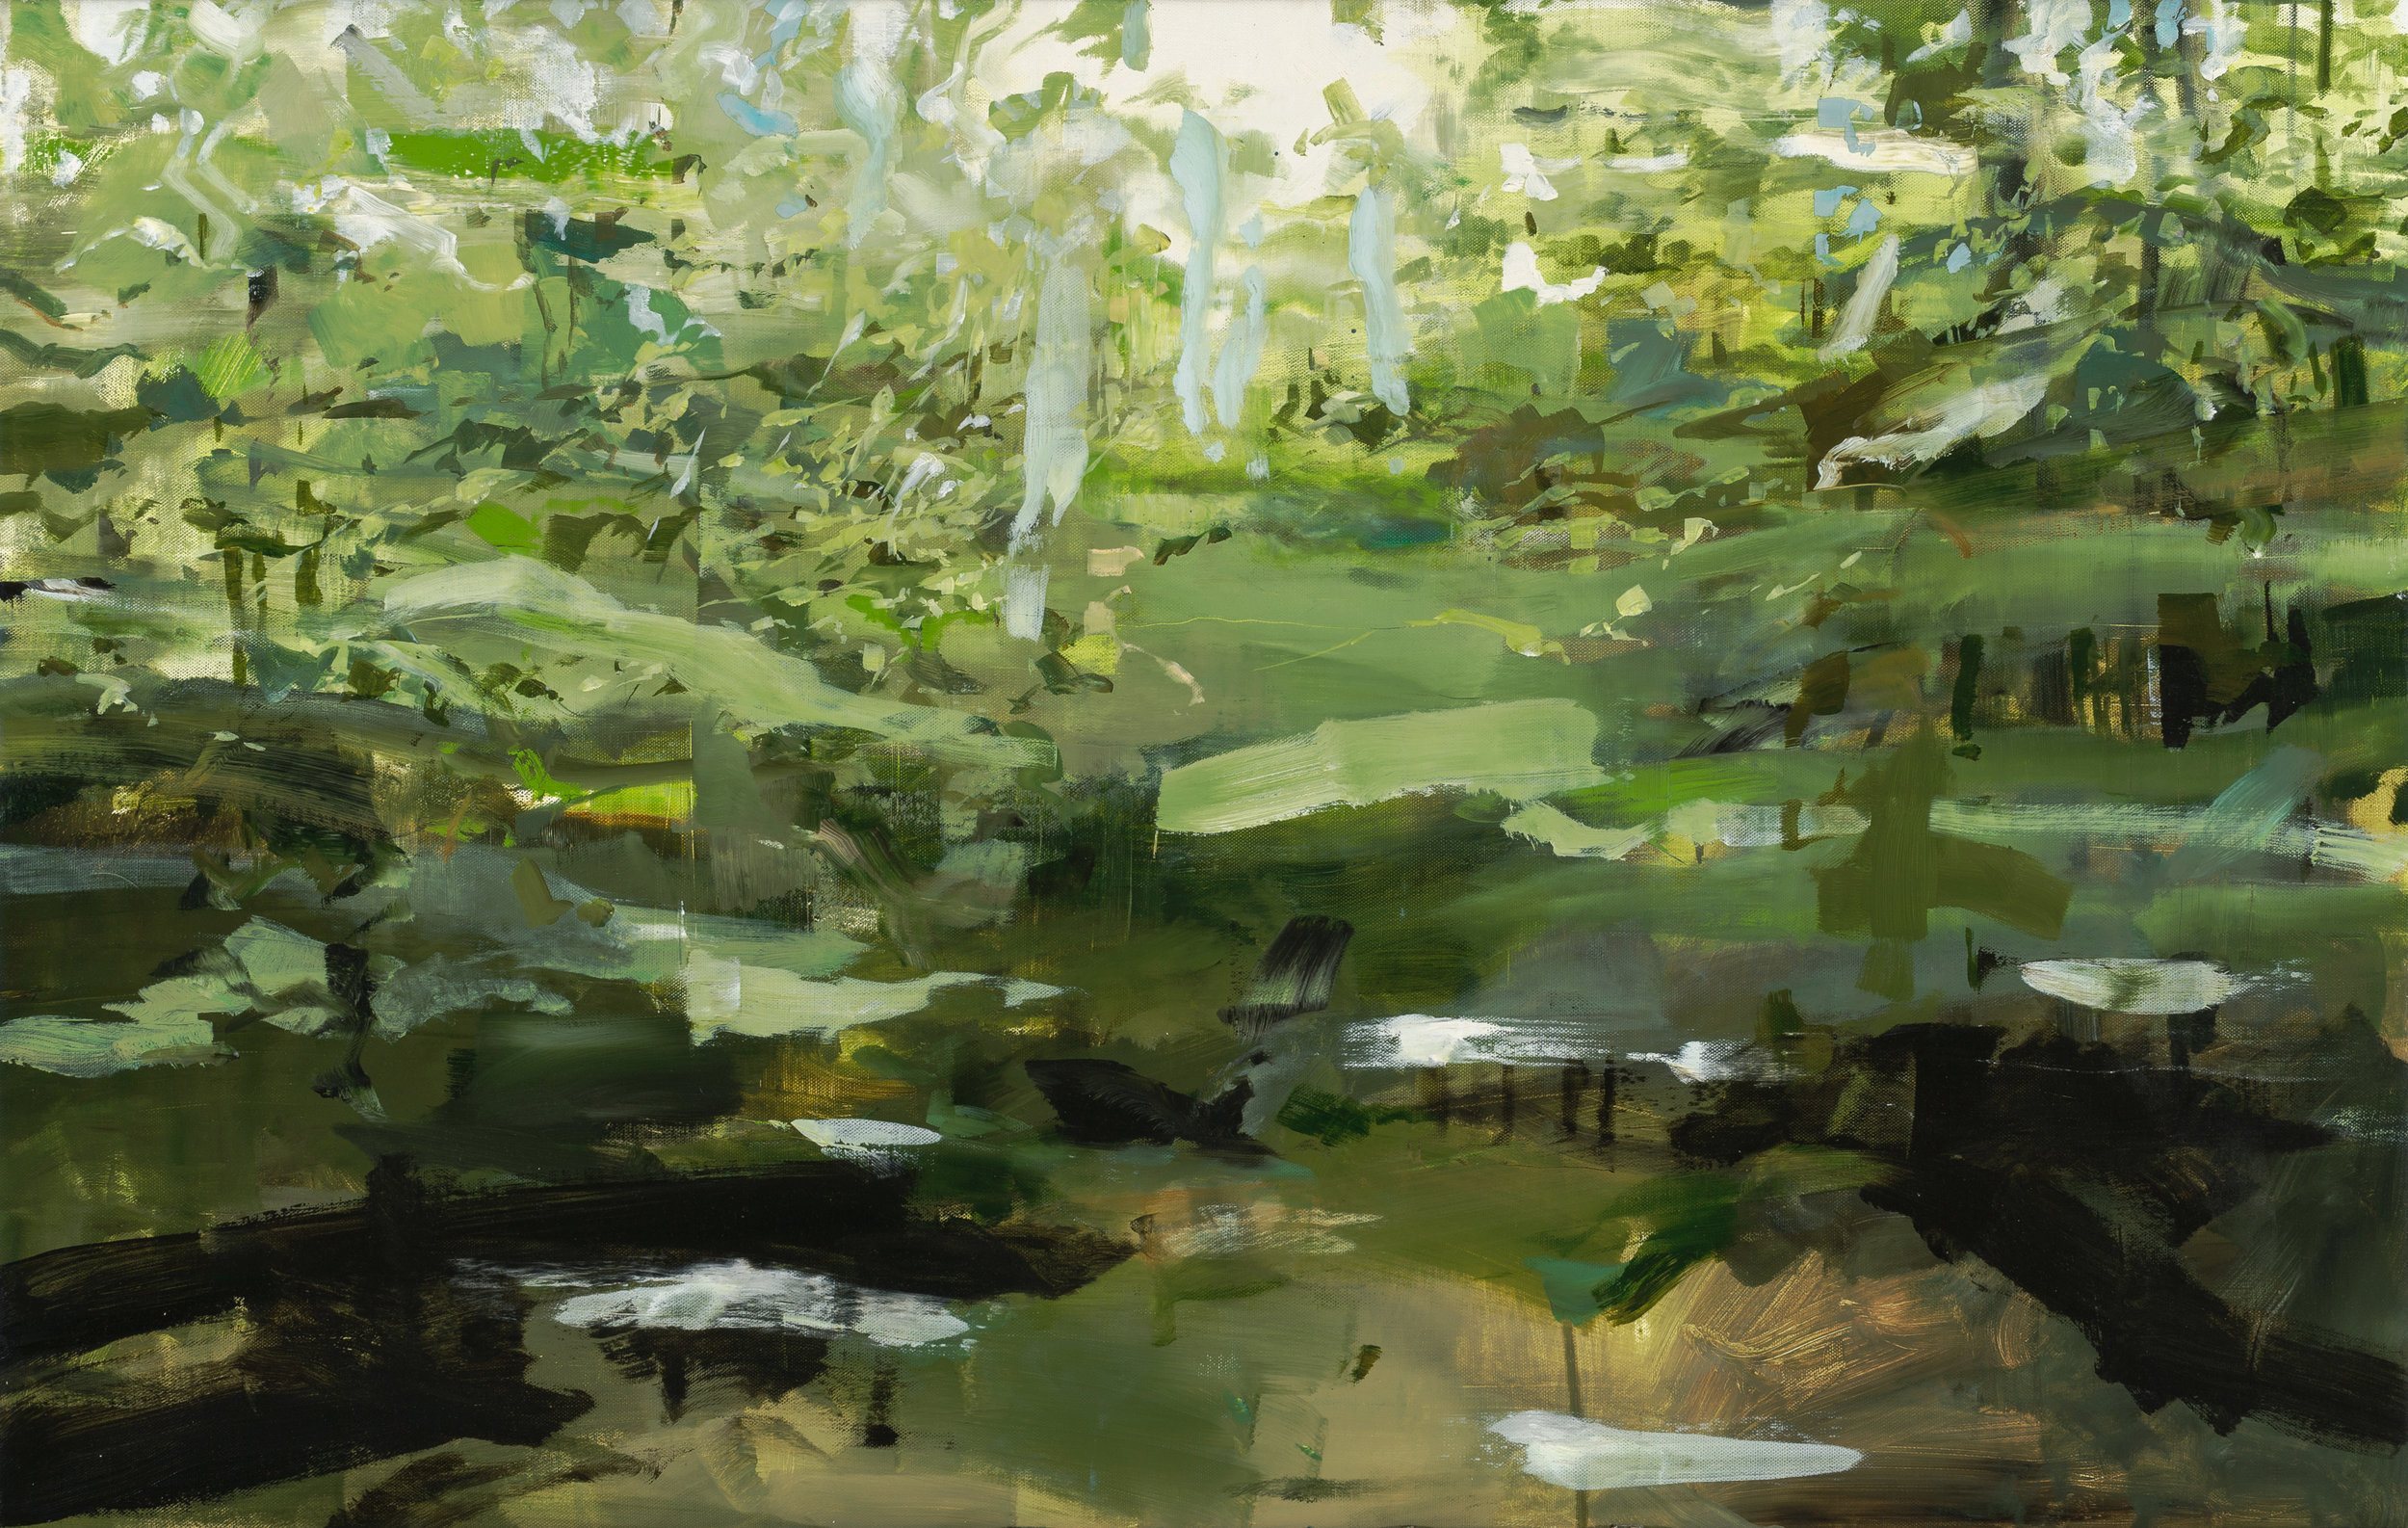 New Hampshire Trees by Alex Kanevsky  36 x 56 inches, Oil on linen